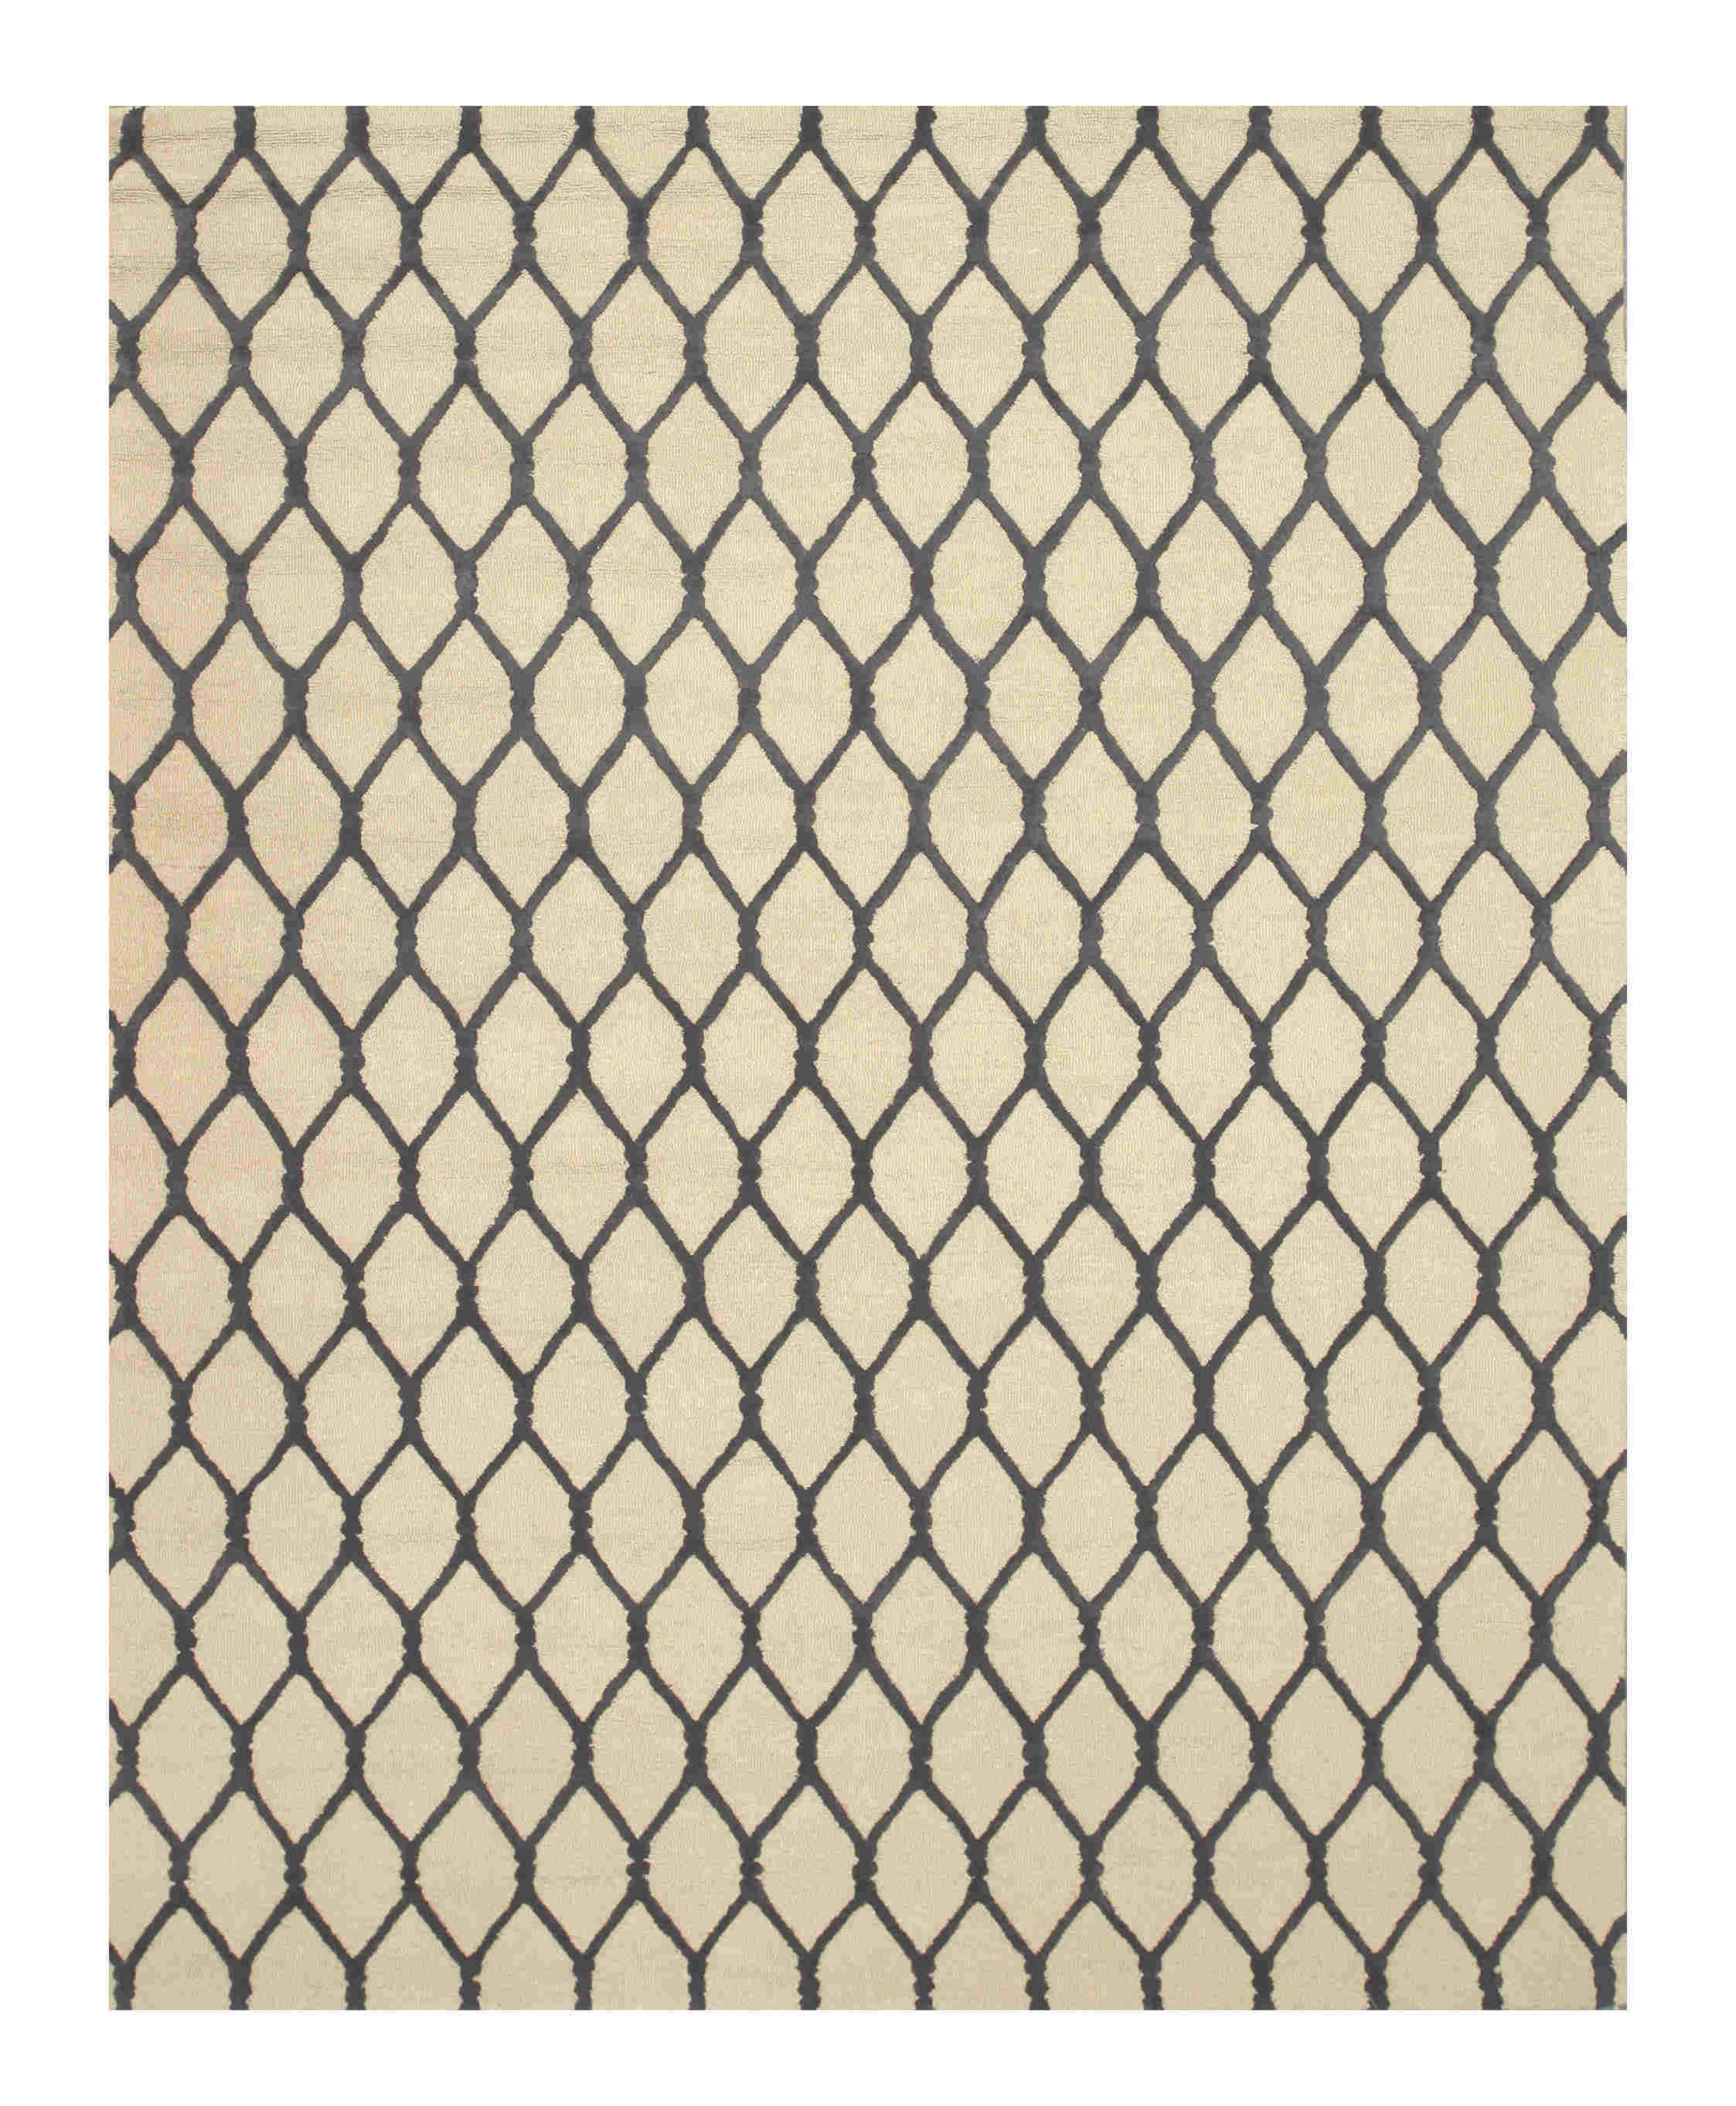 Eorc Vc1001bg Beige Hand Tufted Wool Chain-link Rug